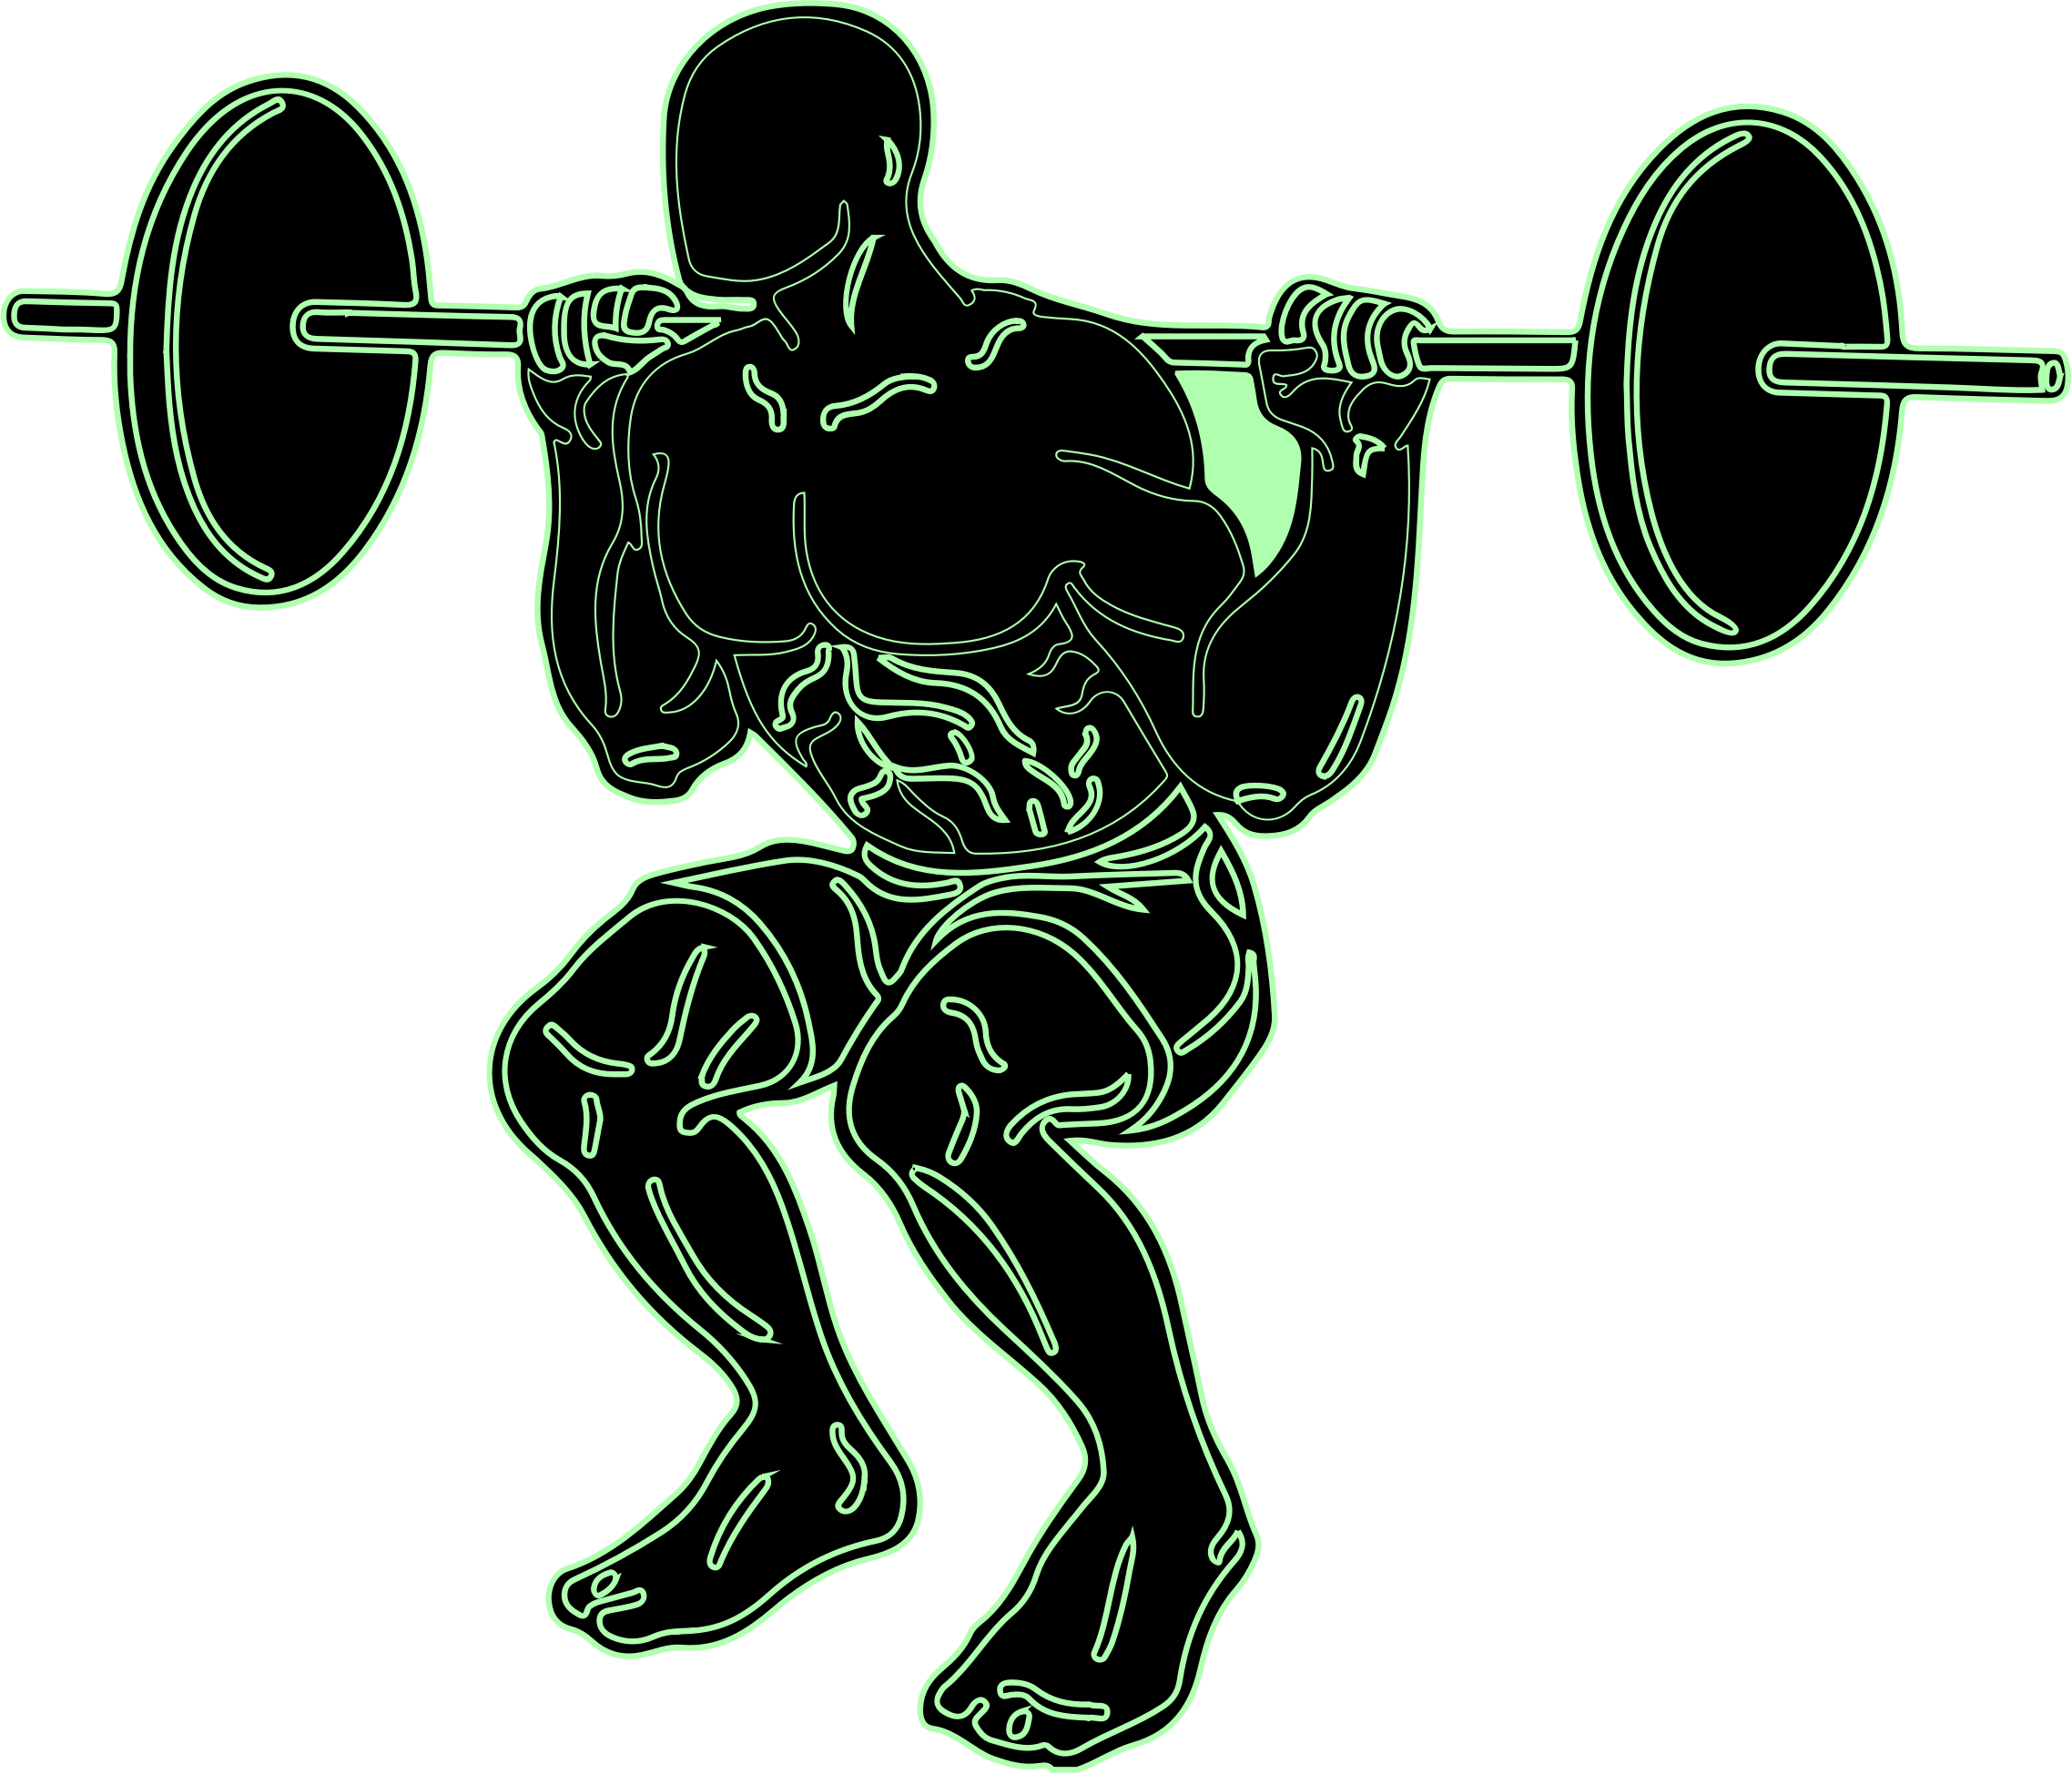 clipart royalty free library Weightlifting clipart. Weight lifting silhouette clip